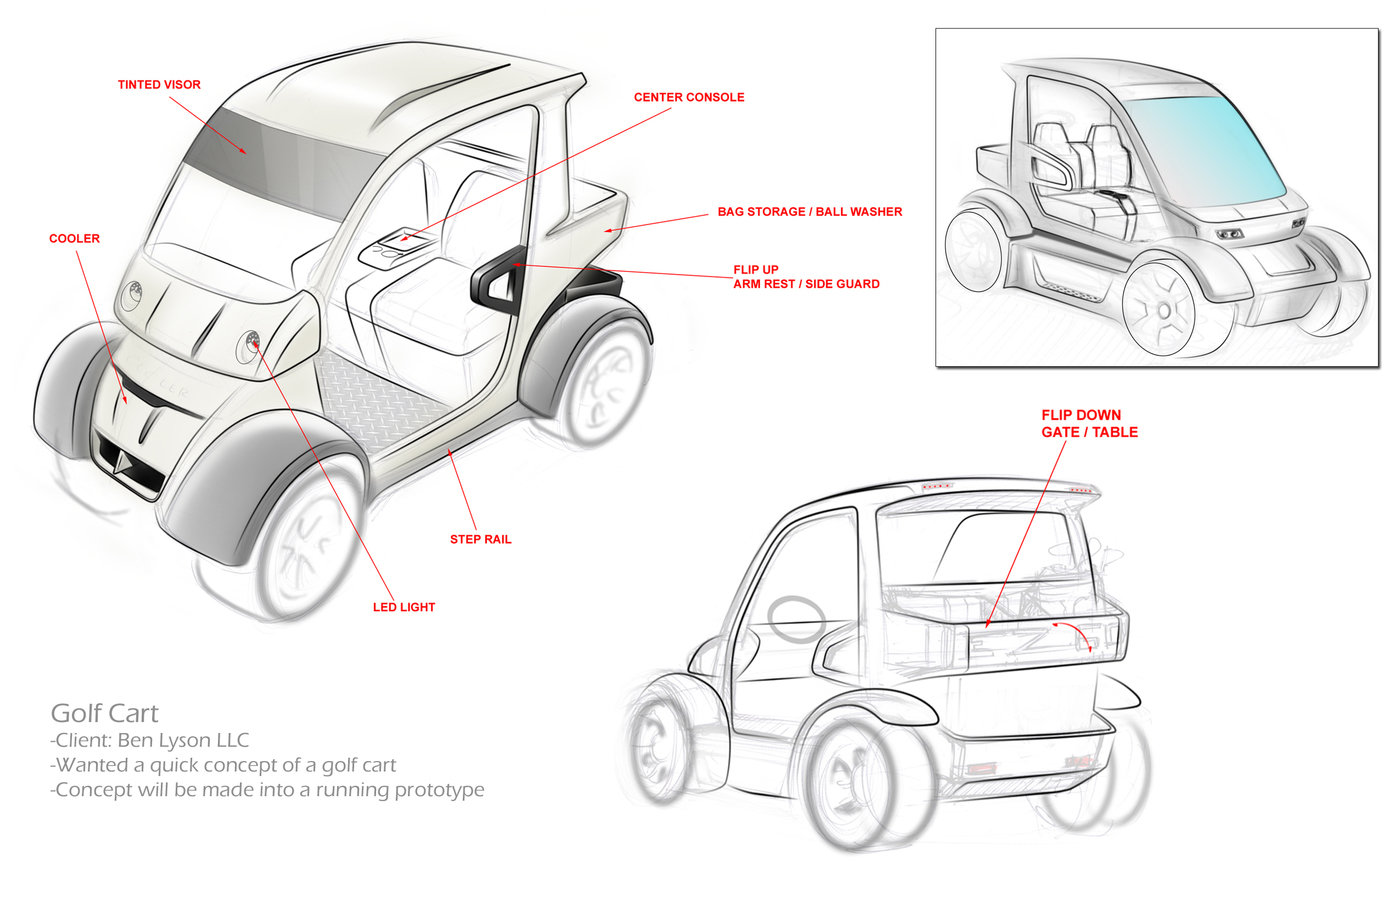 Lyson LLC Golf Cart by Phil Hall, MBA at Coroflot.com on